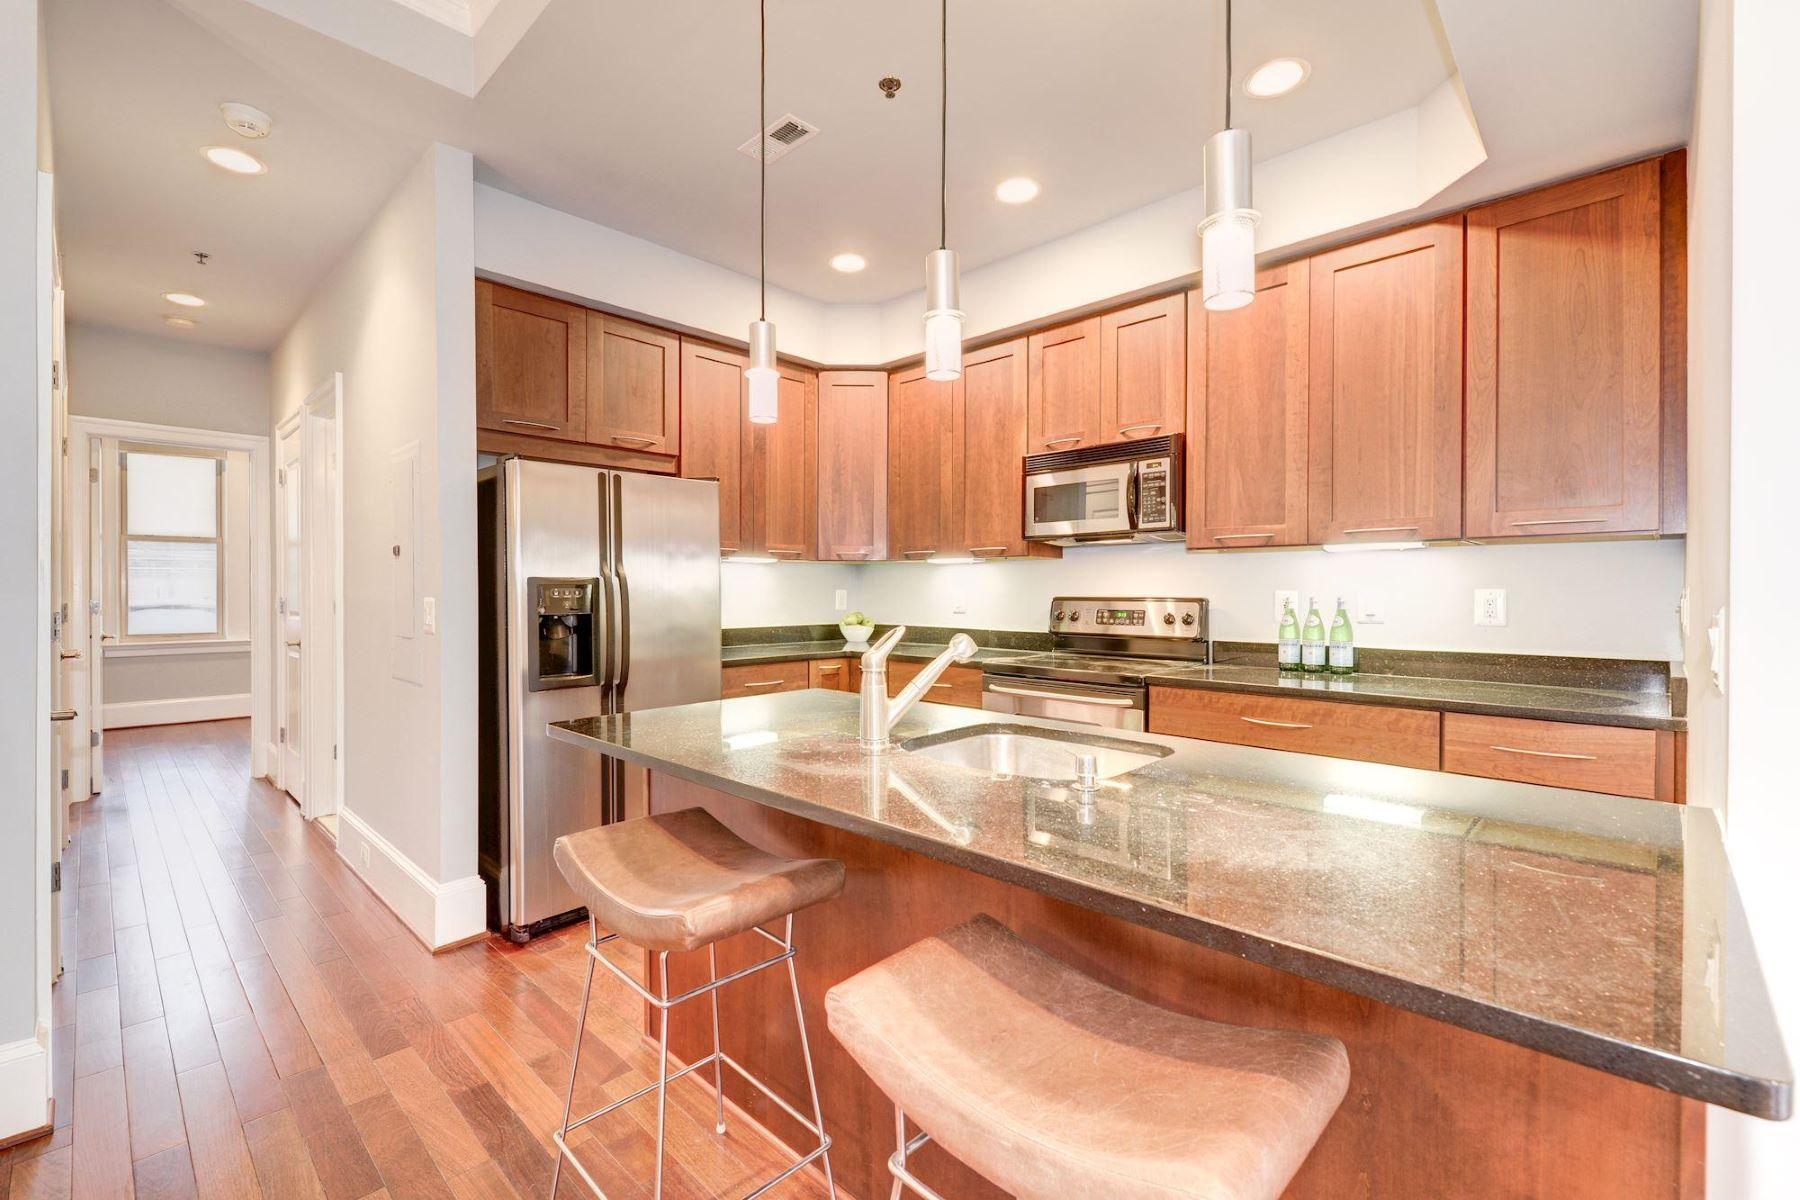 Condominium for Rent at 1817 6th St Nw #1 1817 6th St Nw #1 Washington, District Of Columbia 20001 United States